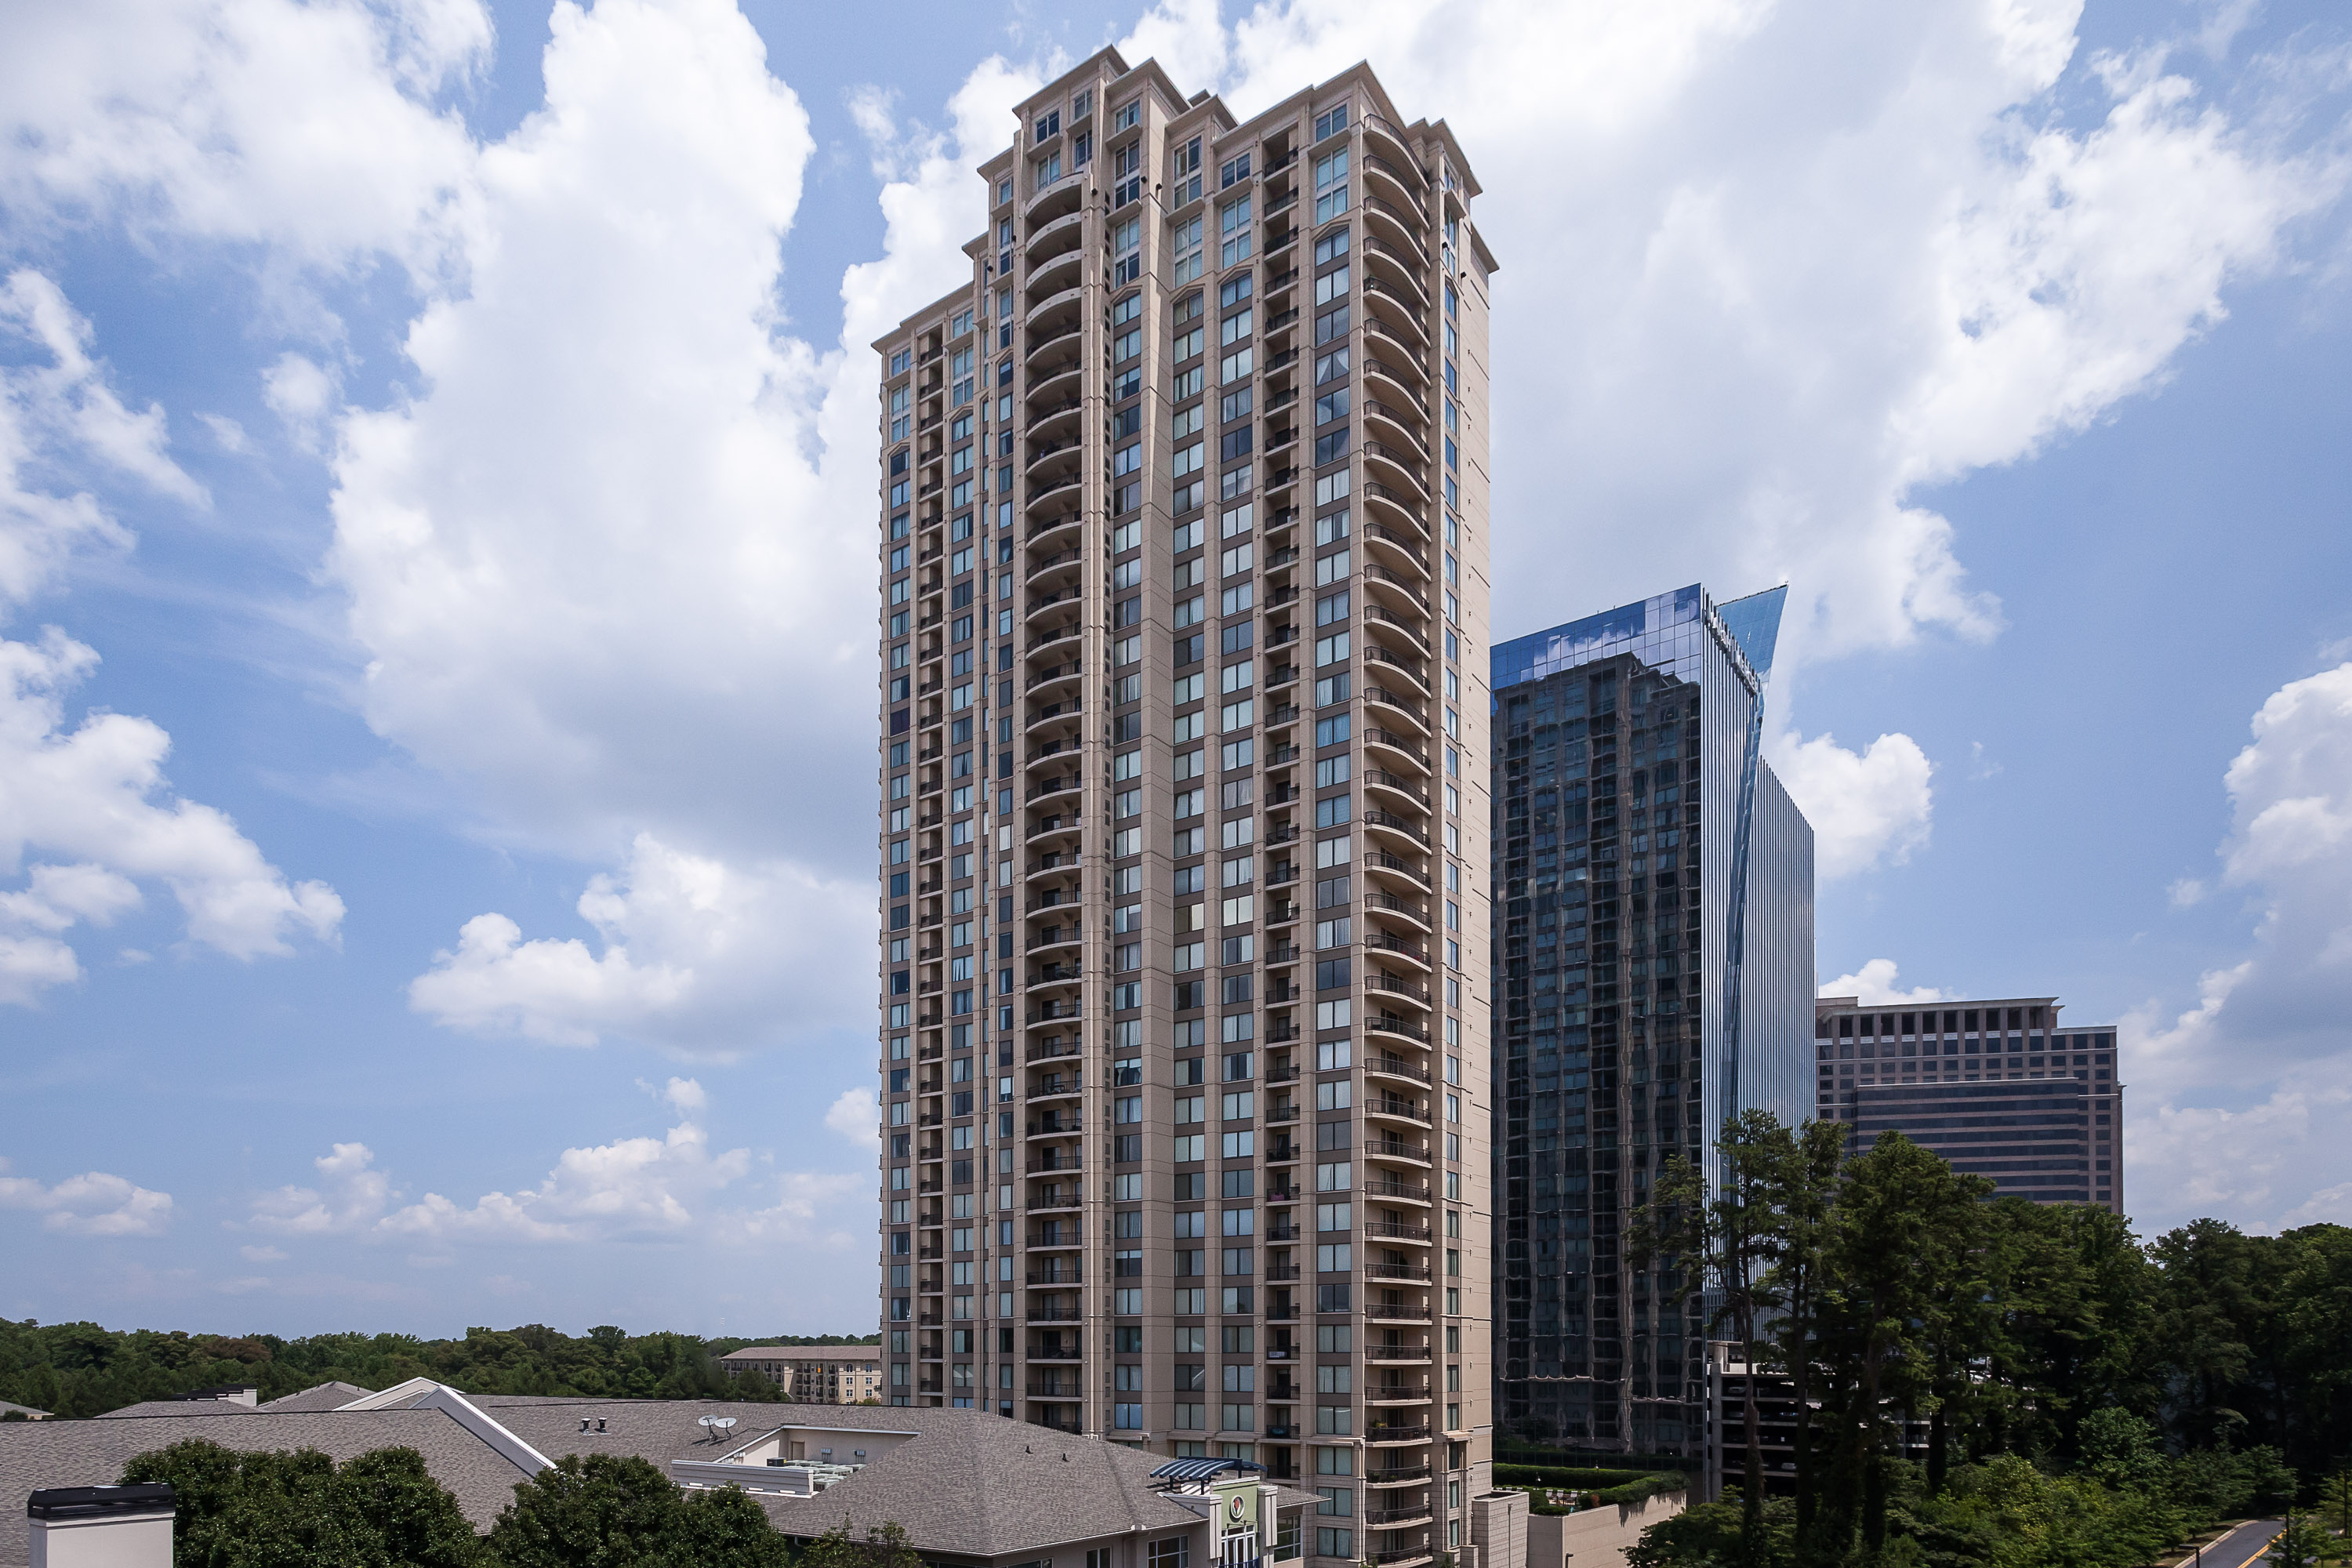 共管物業 為 出售 在 Priced to Sell! Luxury Two Bedroom/Two Bathroom Condo in Buckhead 3445 Stratford Road NE No. 1707 Buckhead, Atlanta, 喬治亞州 30326 美國